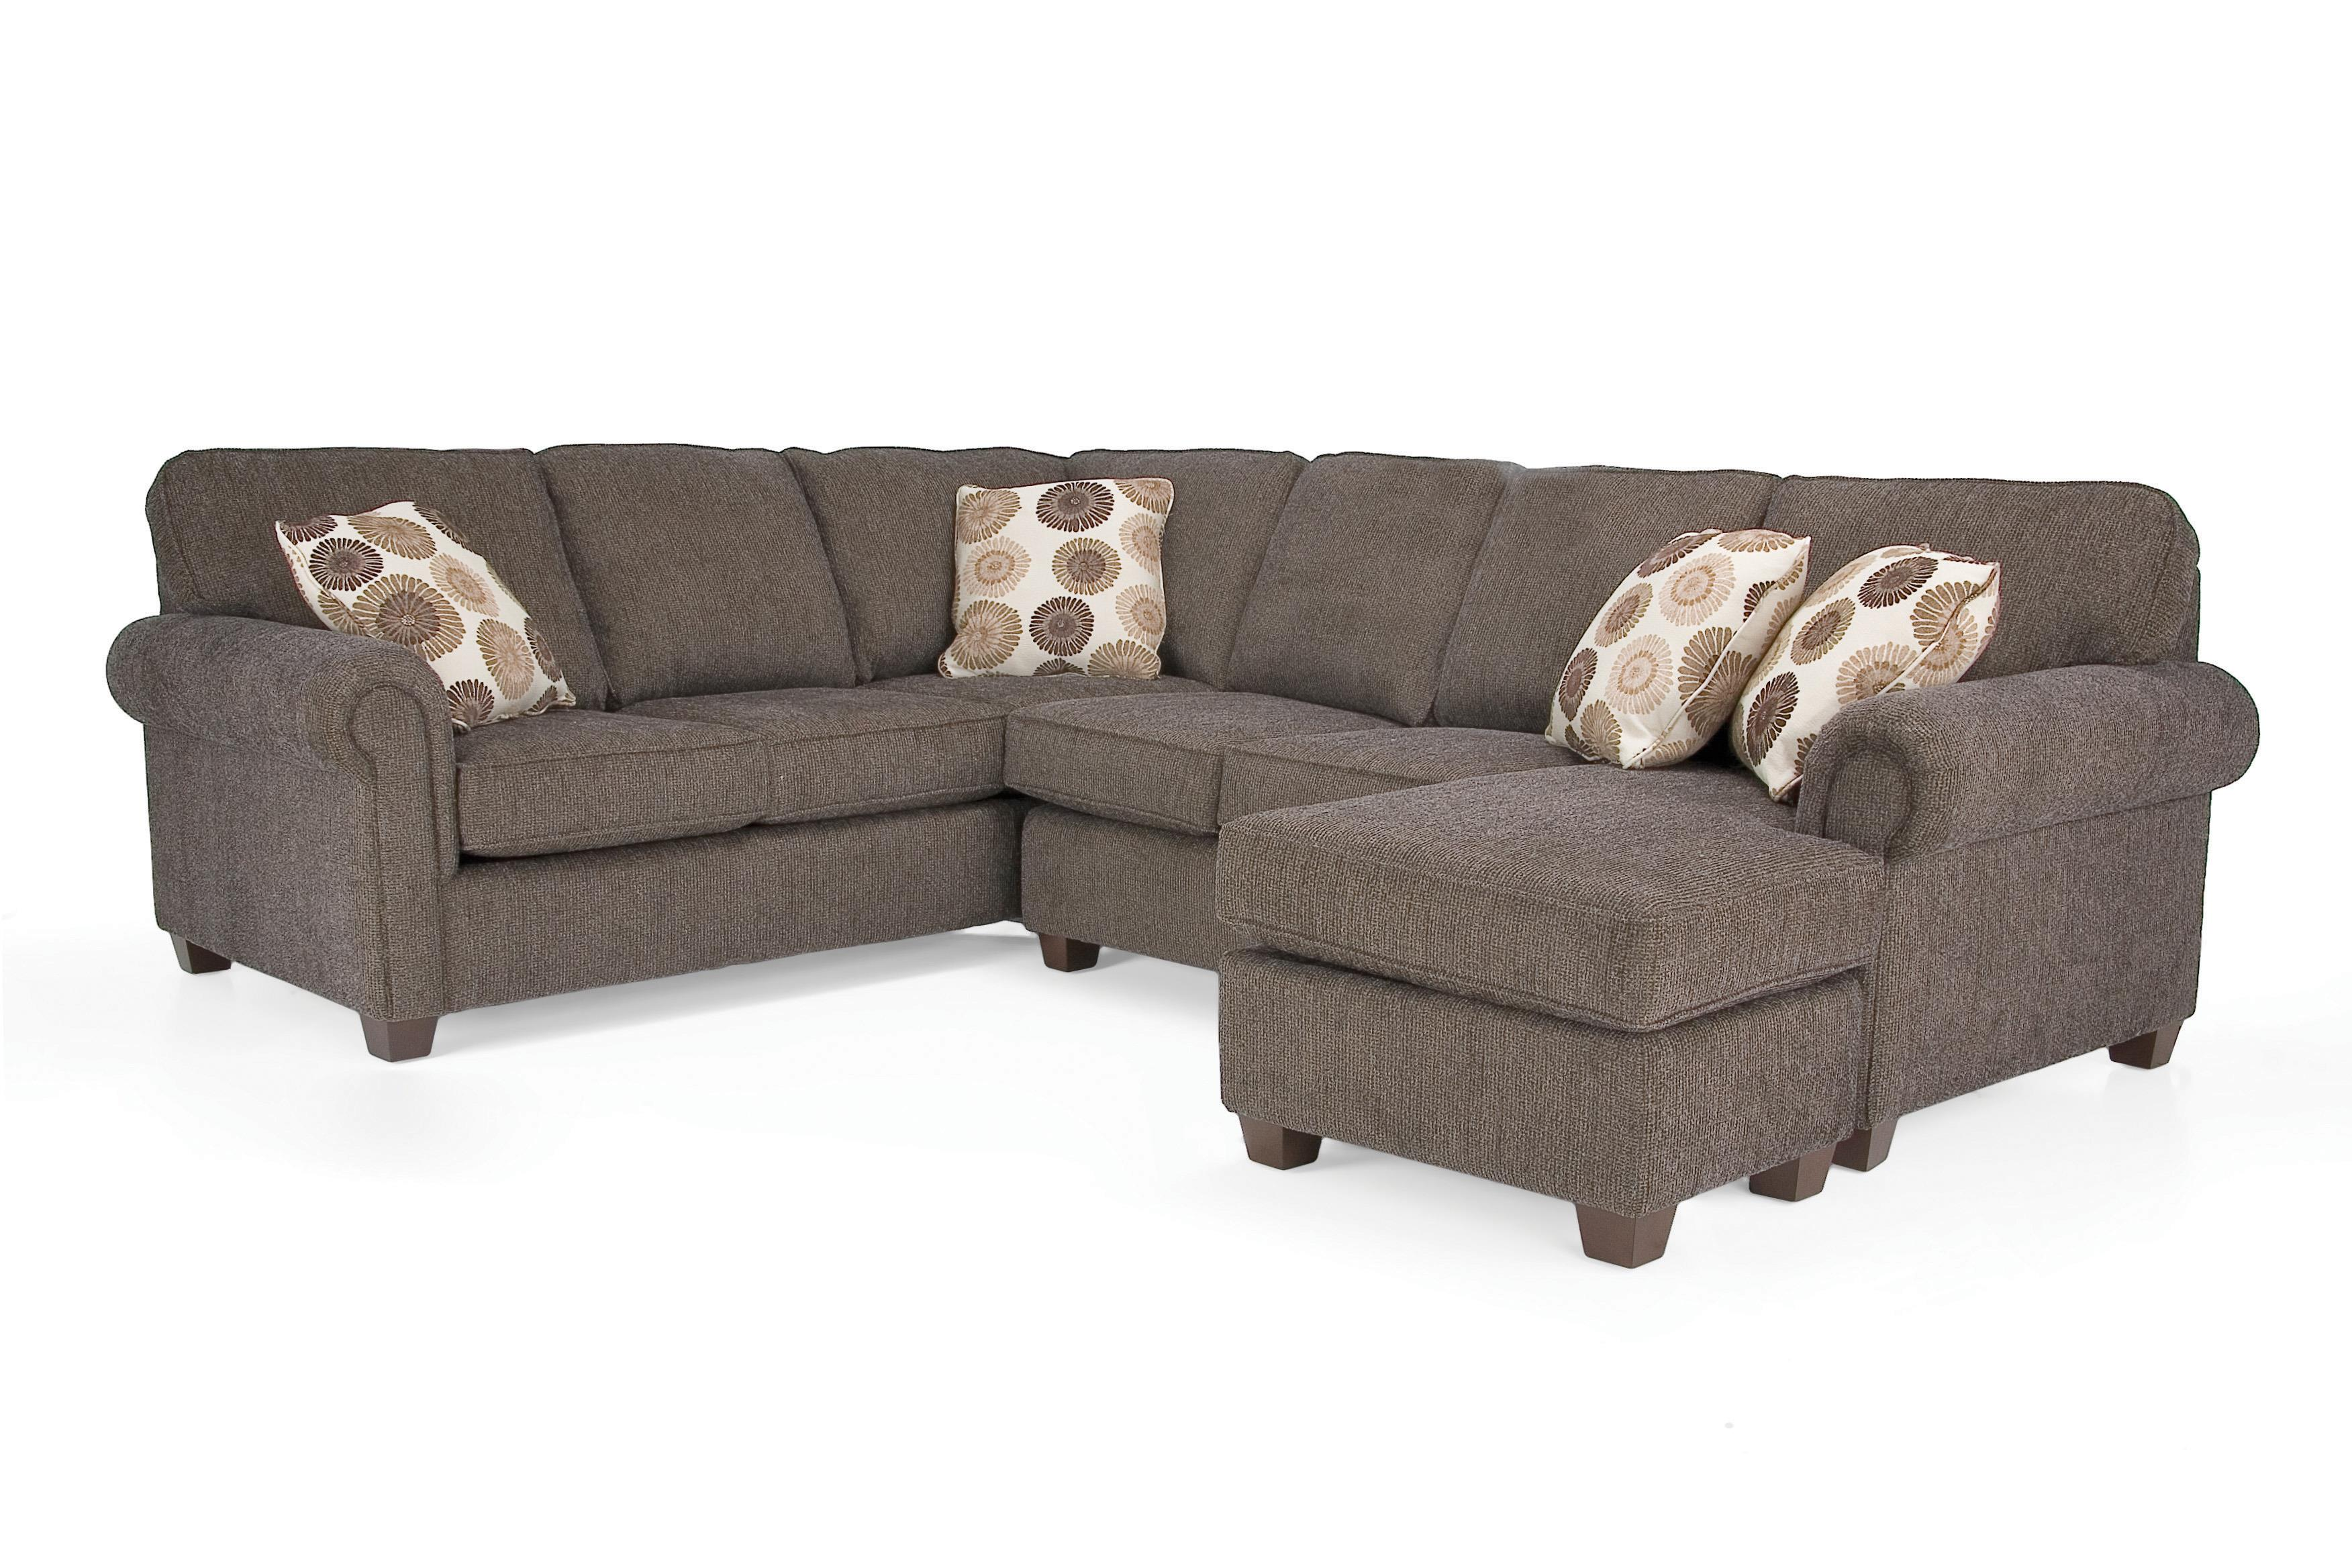 2006 Sectional Sectional Sofa Group by Decor-Rest at Upper Room Home Furnishings